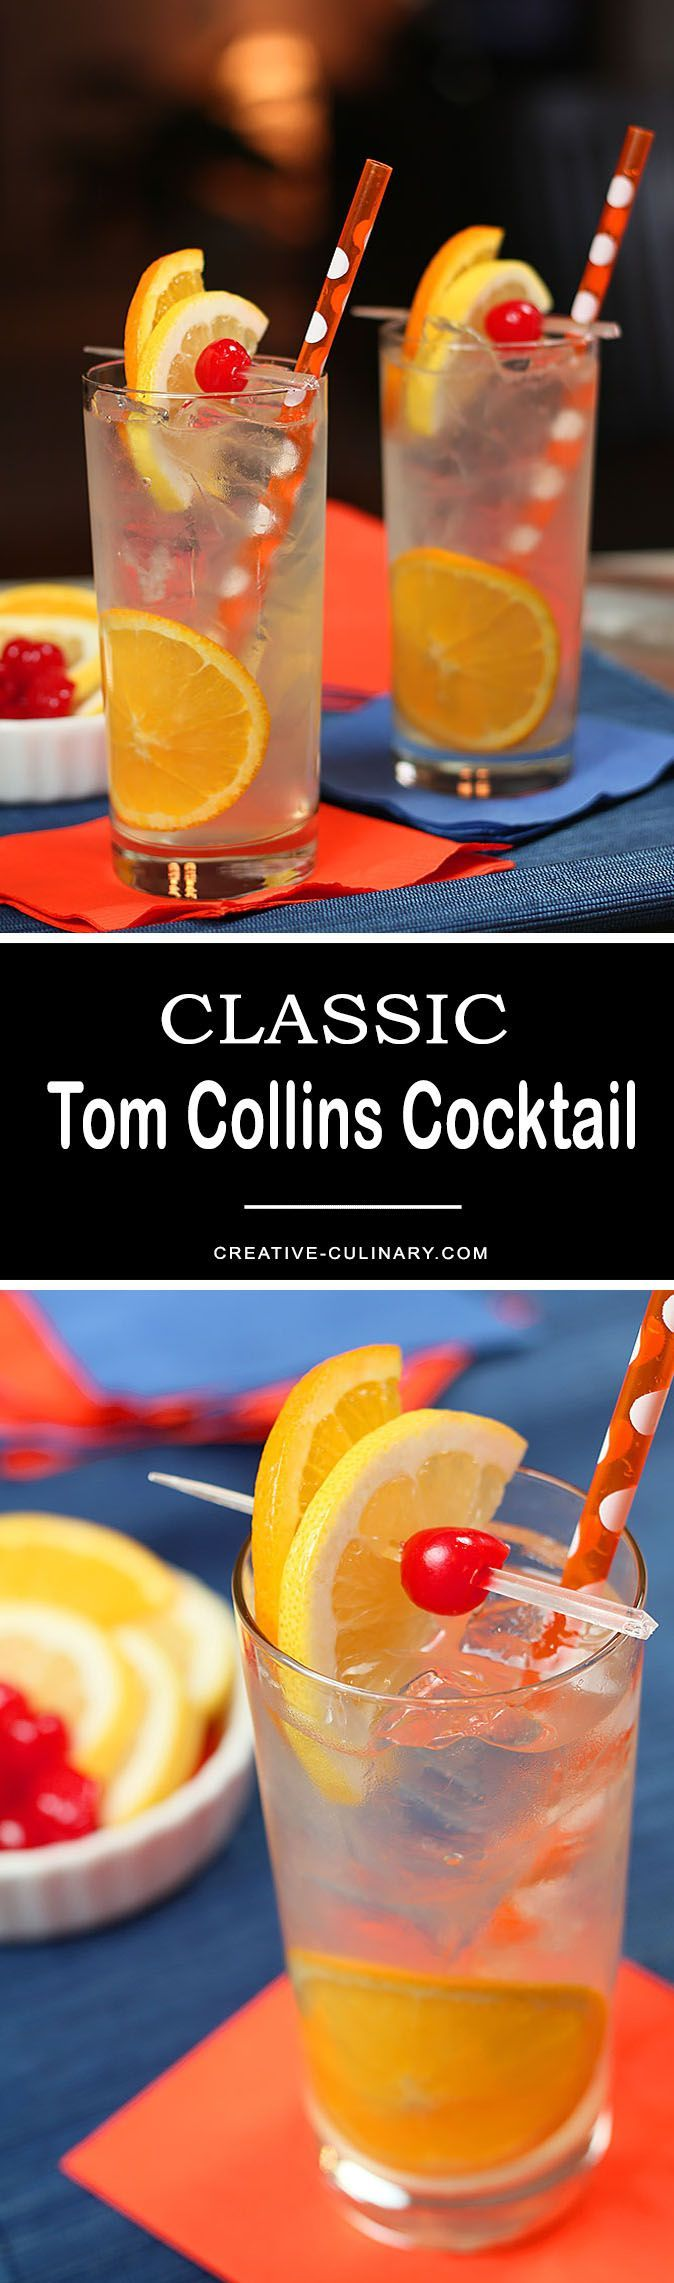 The Tom Collins Cocktail is one I love all year round; it's perfect for a crowd and a great accompaniment to spicy foods served at parties. via @creativculinary